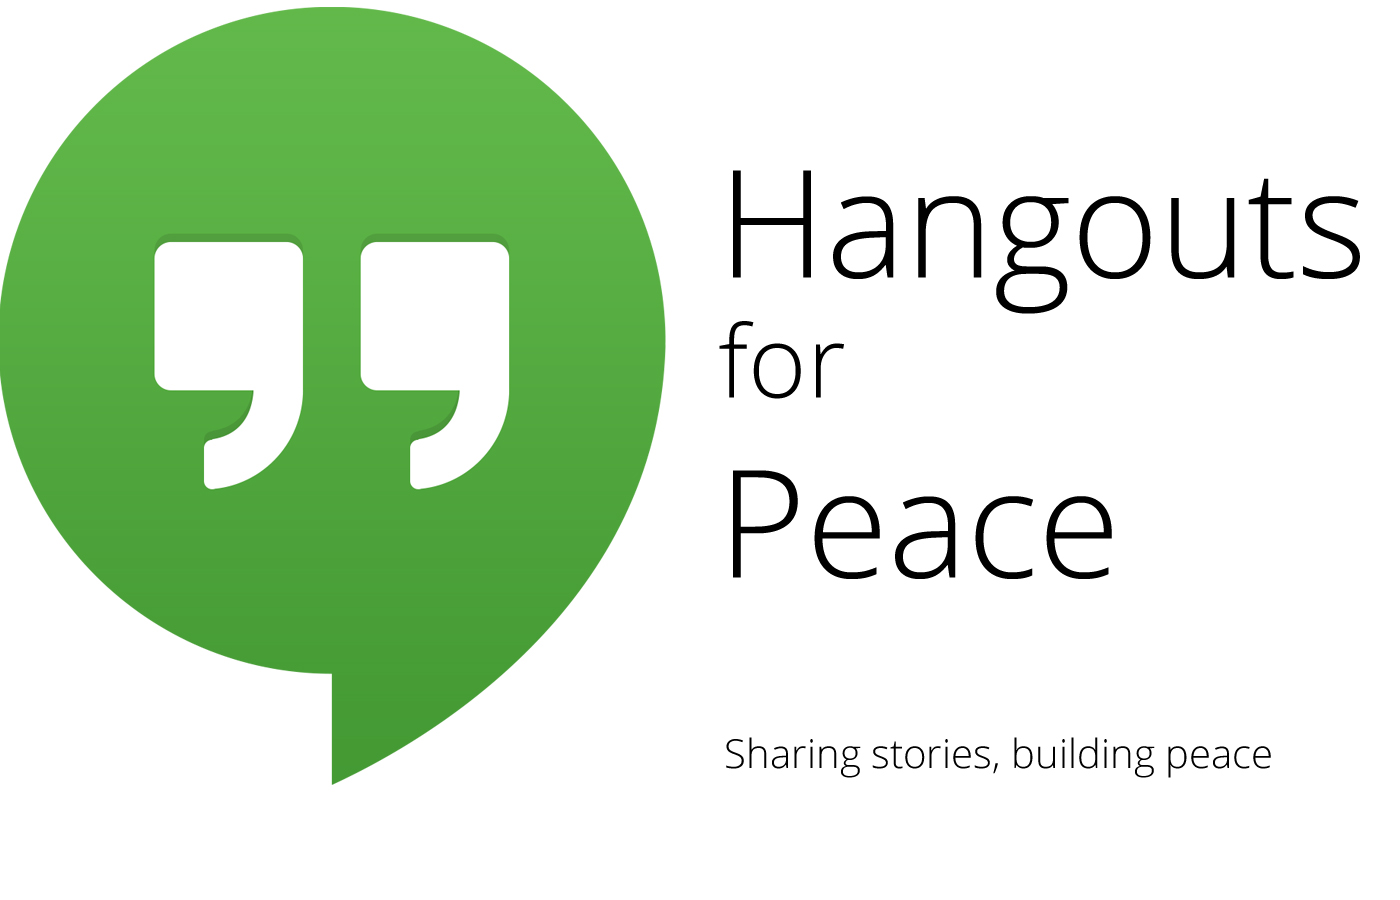 Hangouts for Peace